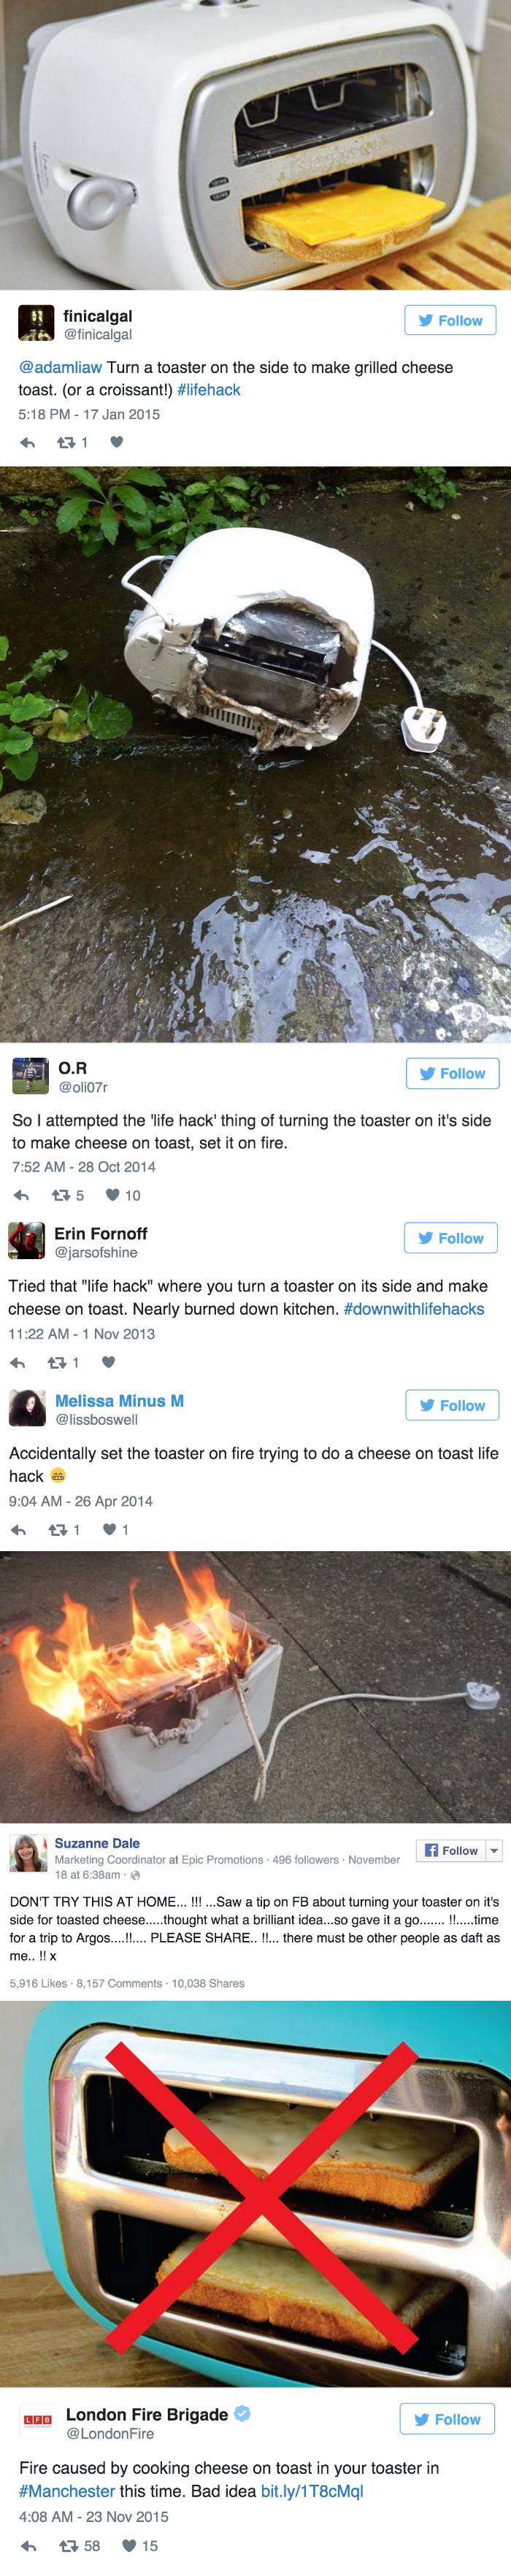 funny fail tweet london fire brigrade tweets this grilled cheese life hack is toast